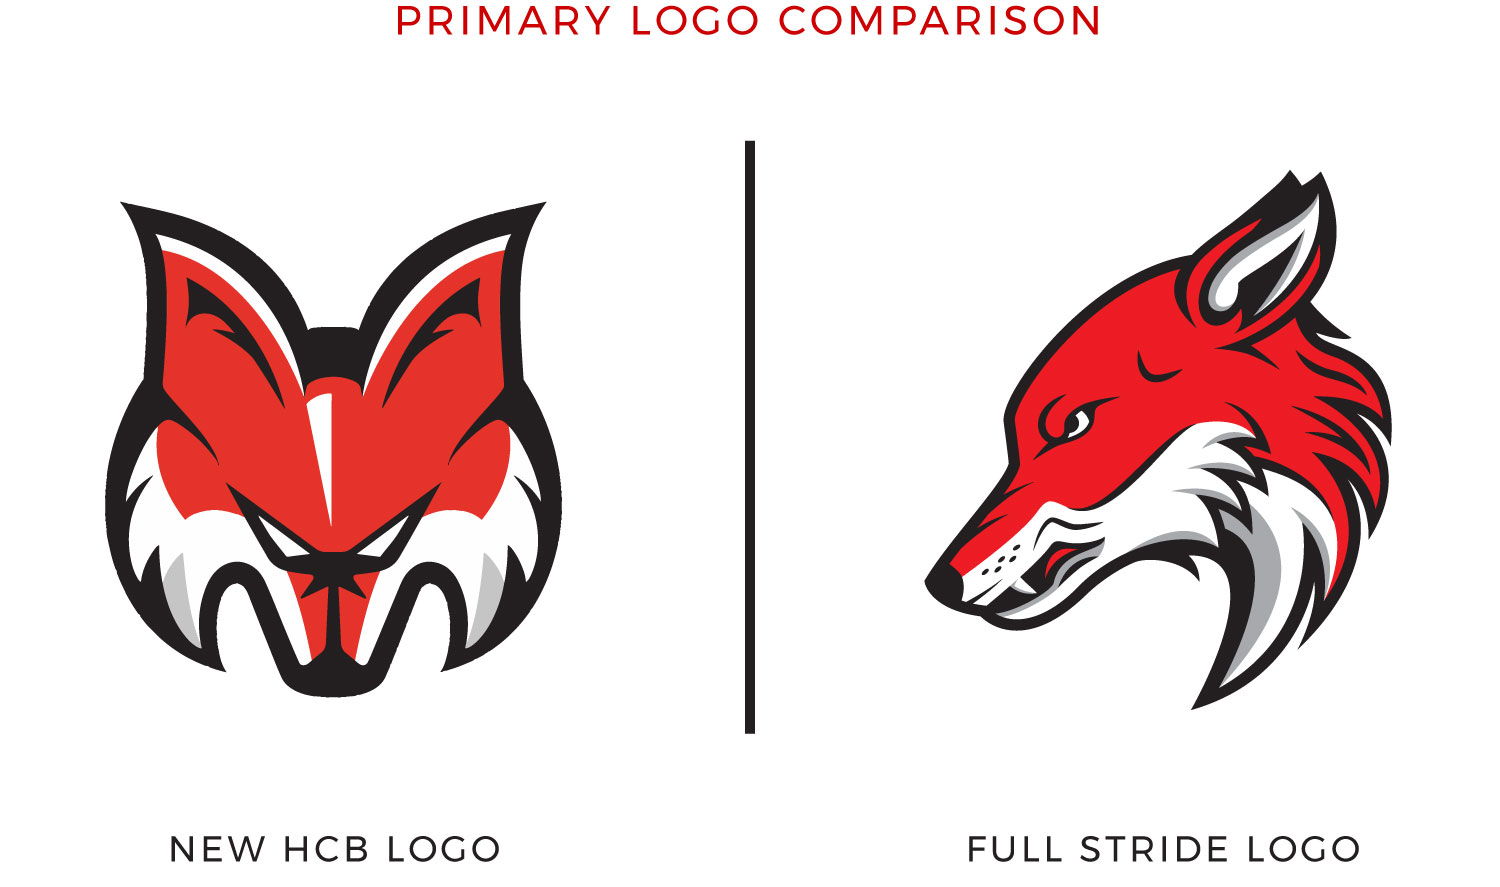 HCB_Foxes_Logo-Comparison-Primary.jpg